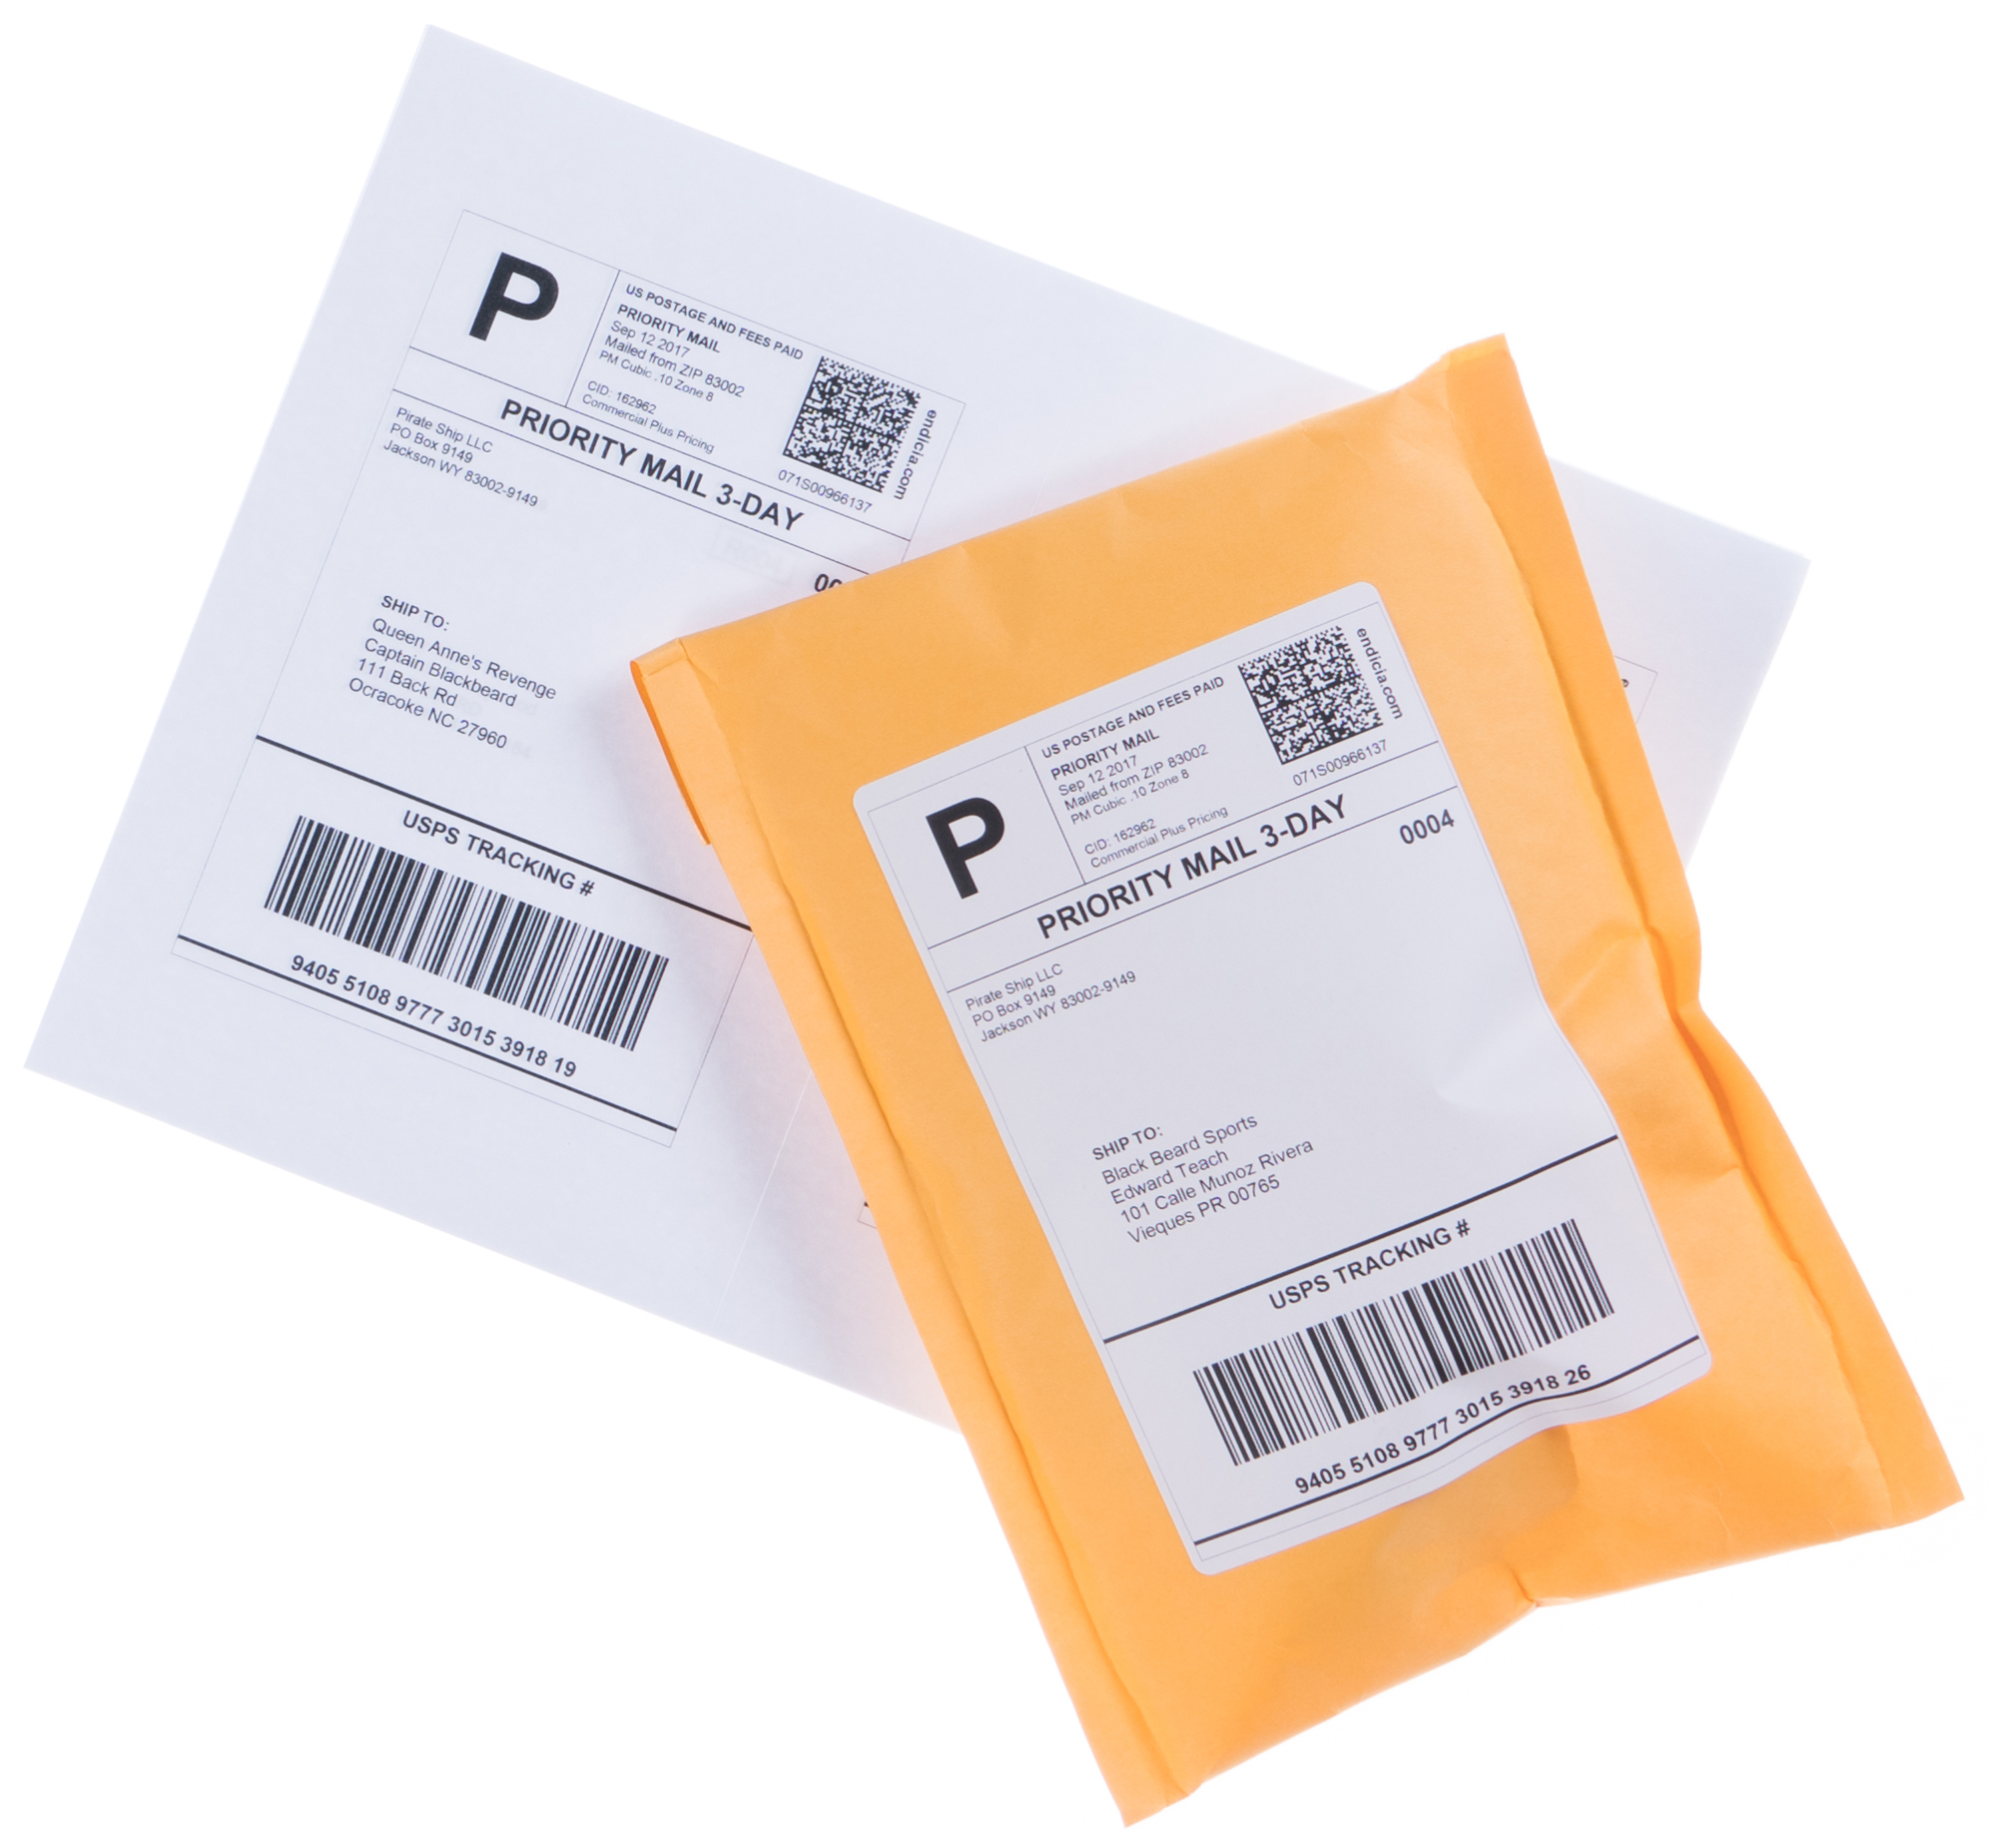 Priority Mail Cubic softpack shipping labels and envelope